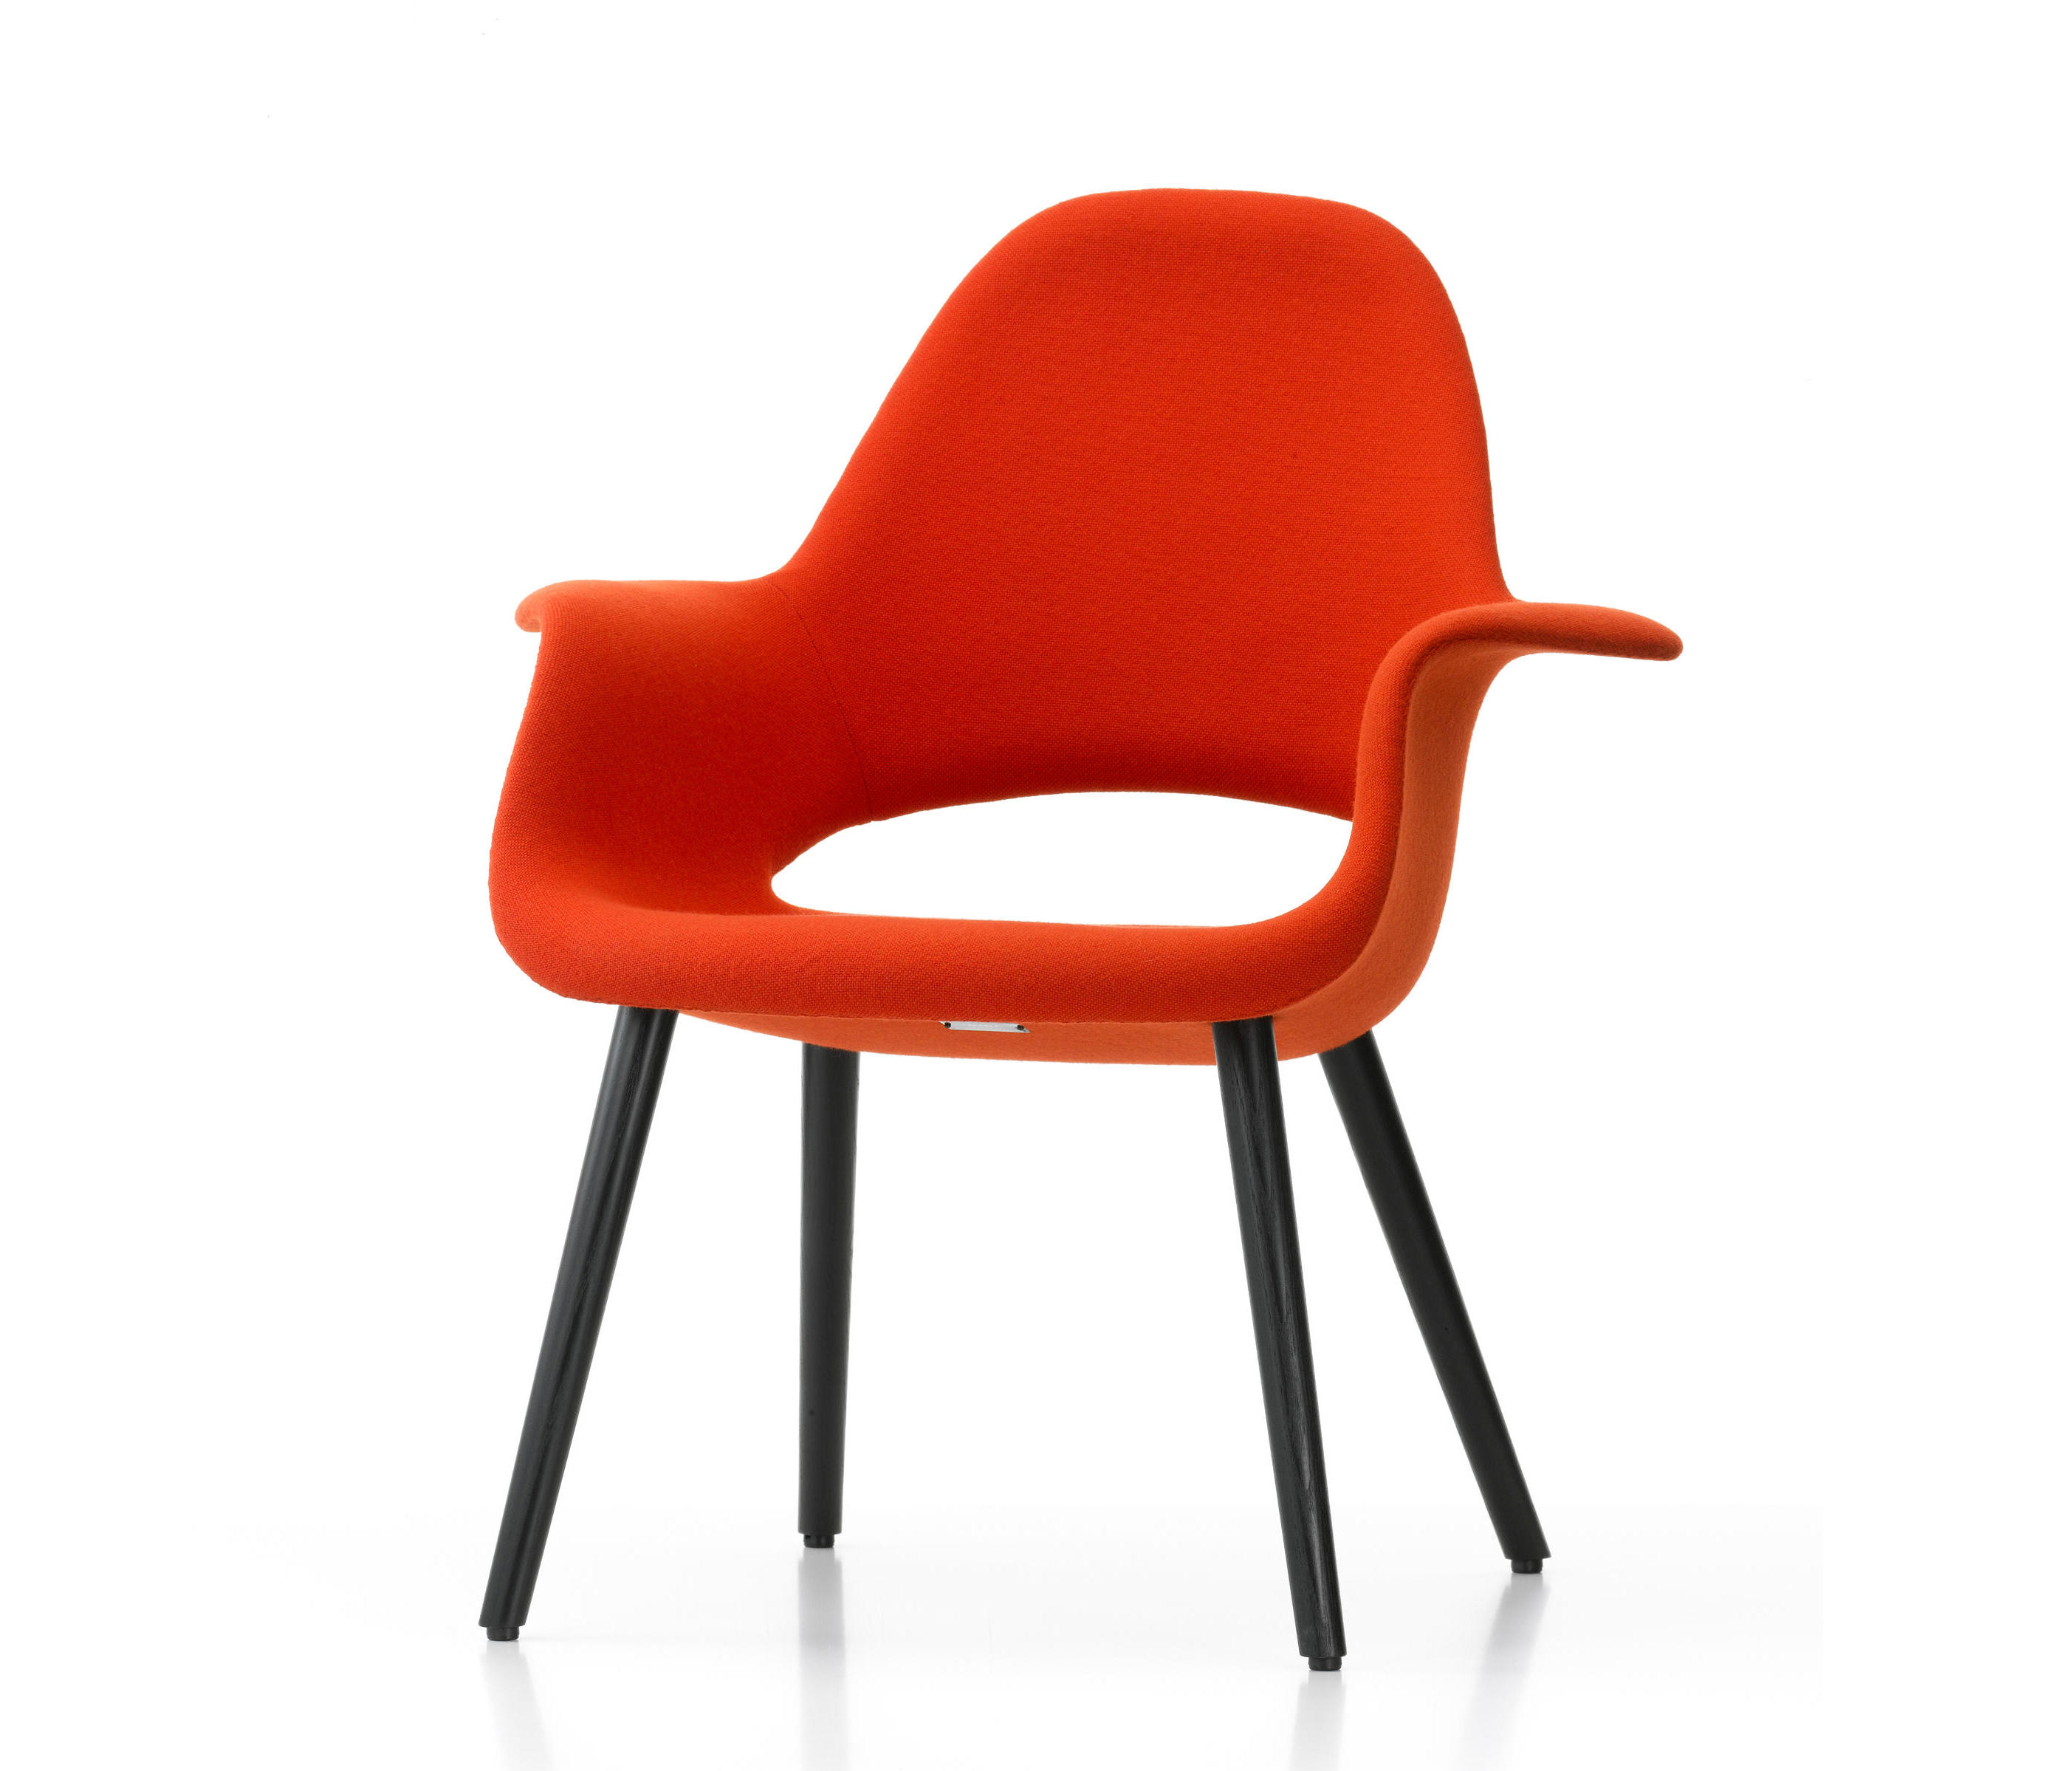 Organic Chair Chairs From Vitra Architonic - Vitra Organic Chair Price